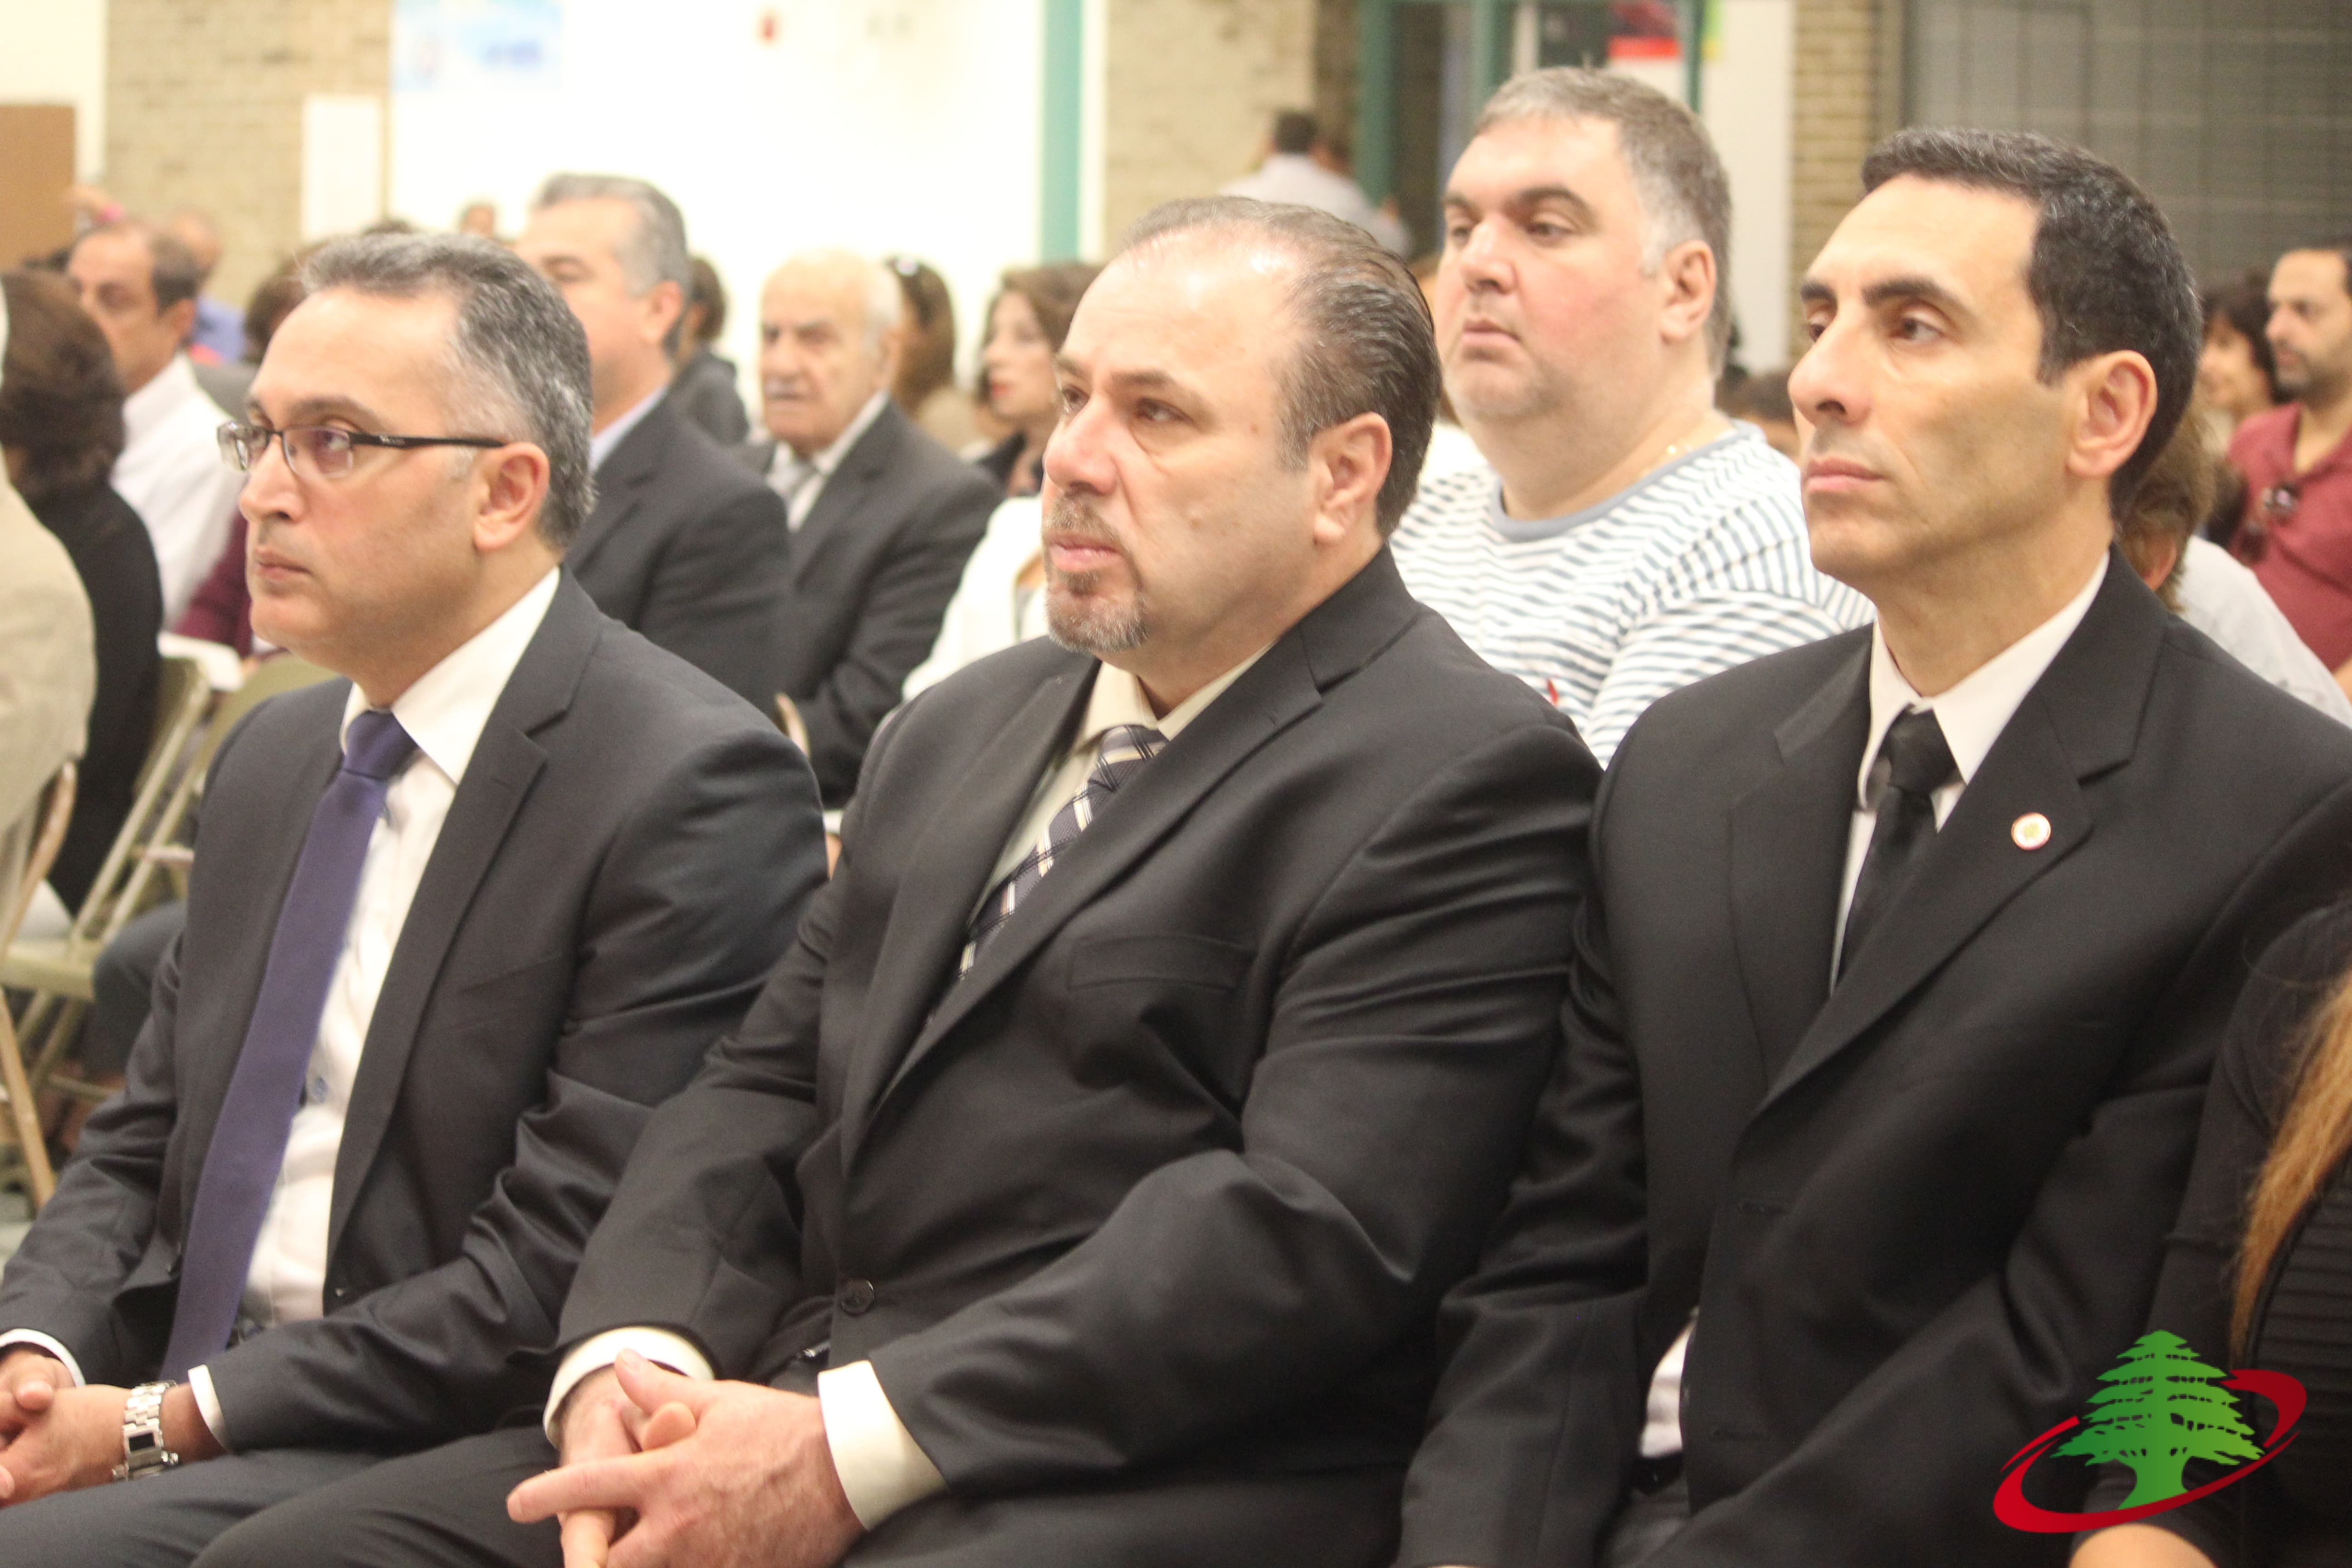 f7e112803 ... Lebanese Forces Michigan Chapter President John Moussawer (center) and Lebanese  Forces Secretary General in